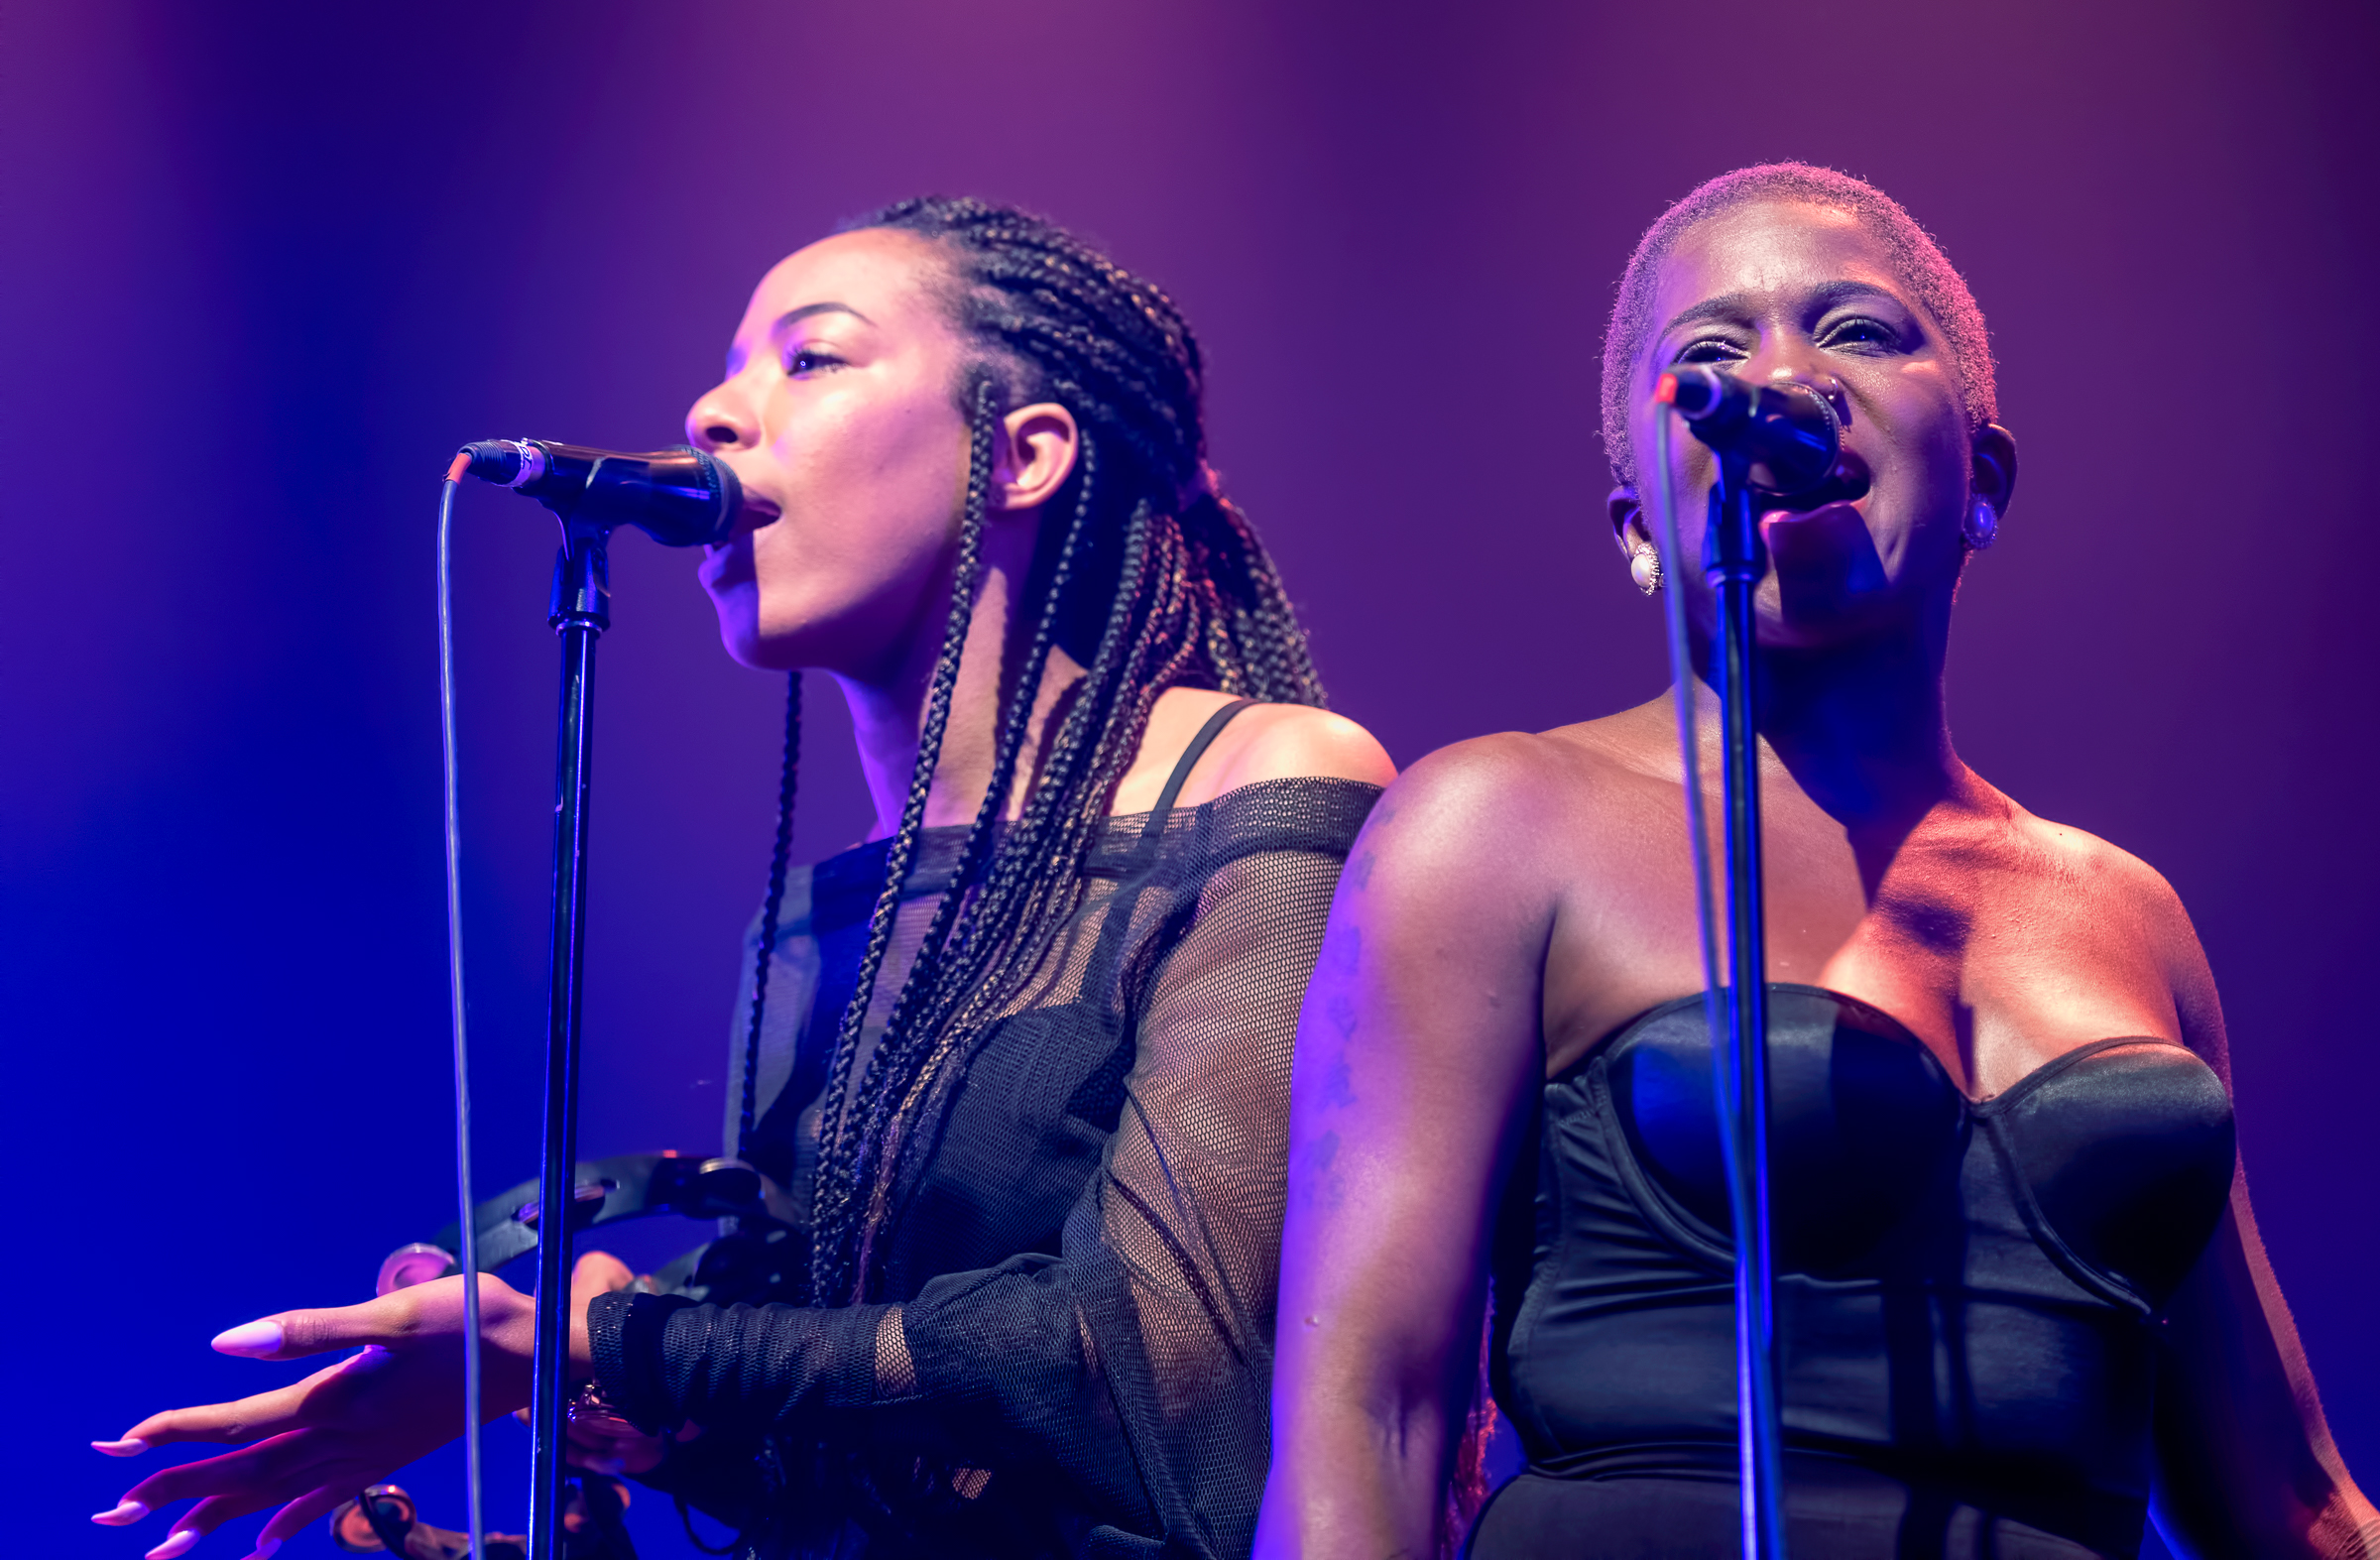 Tiffany Stevenson And Denise Stoudmire With Cory Henry And The Funk Apostles At The Montreal International Jazz Festival 2018